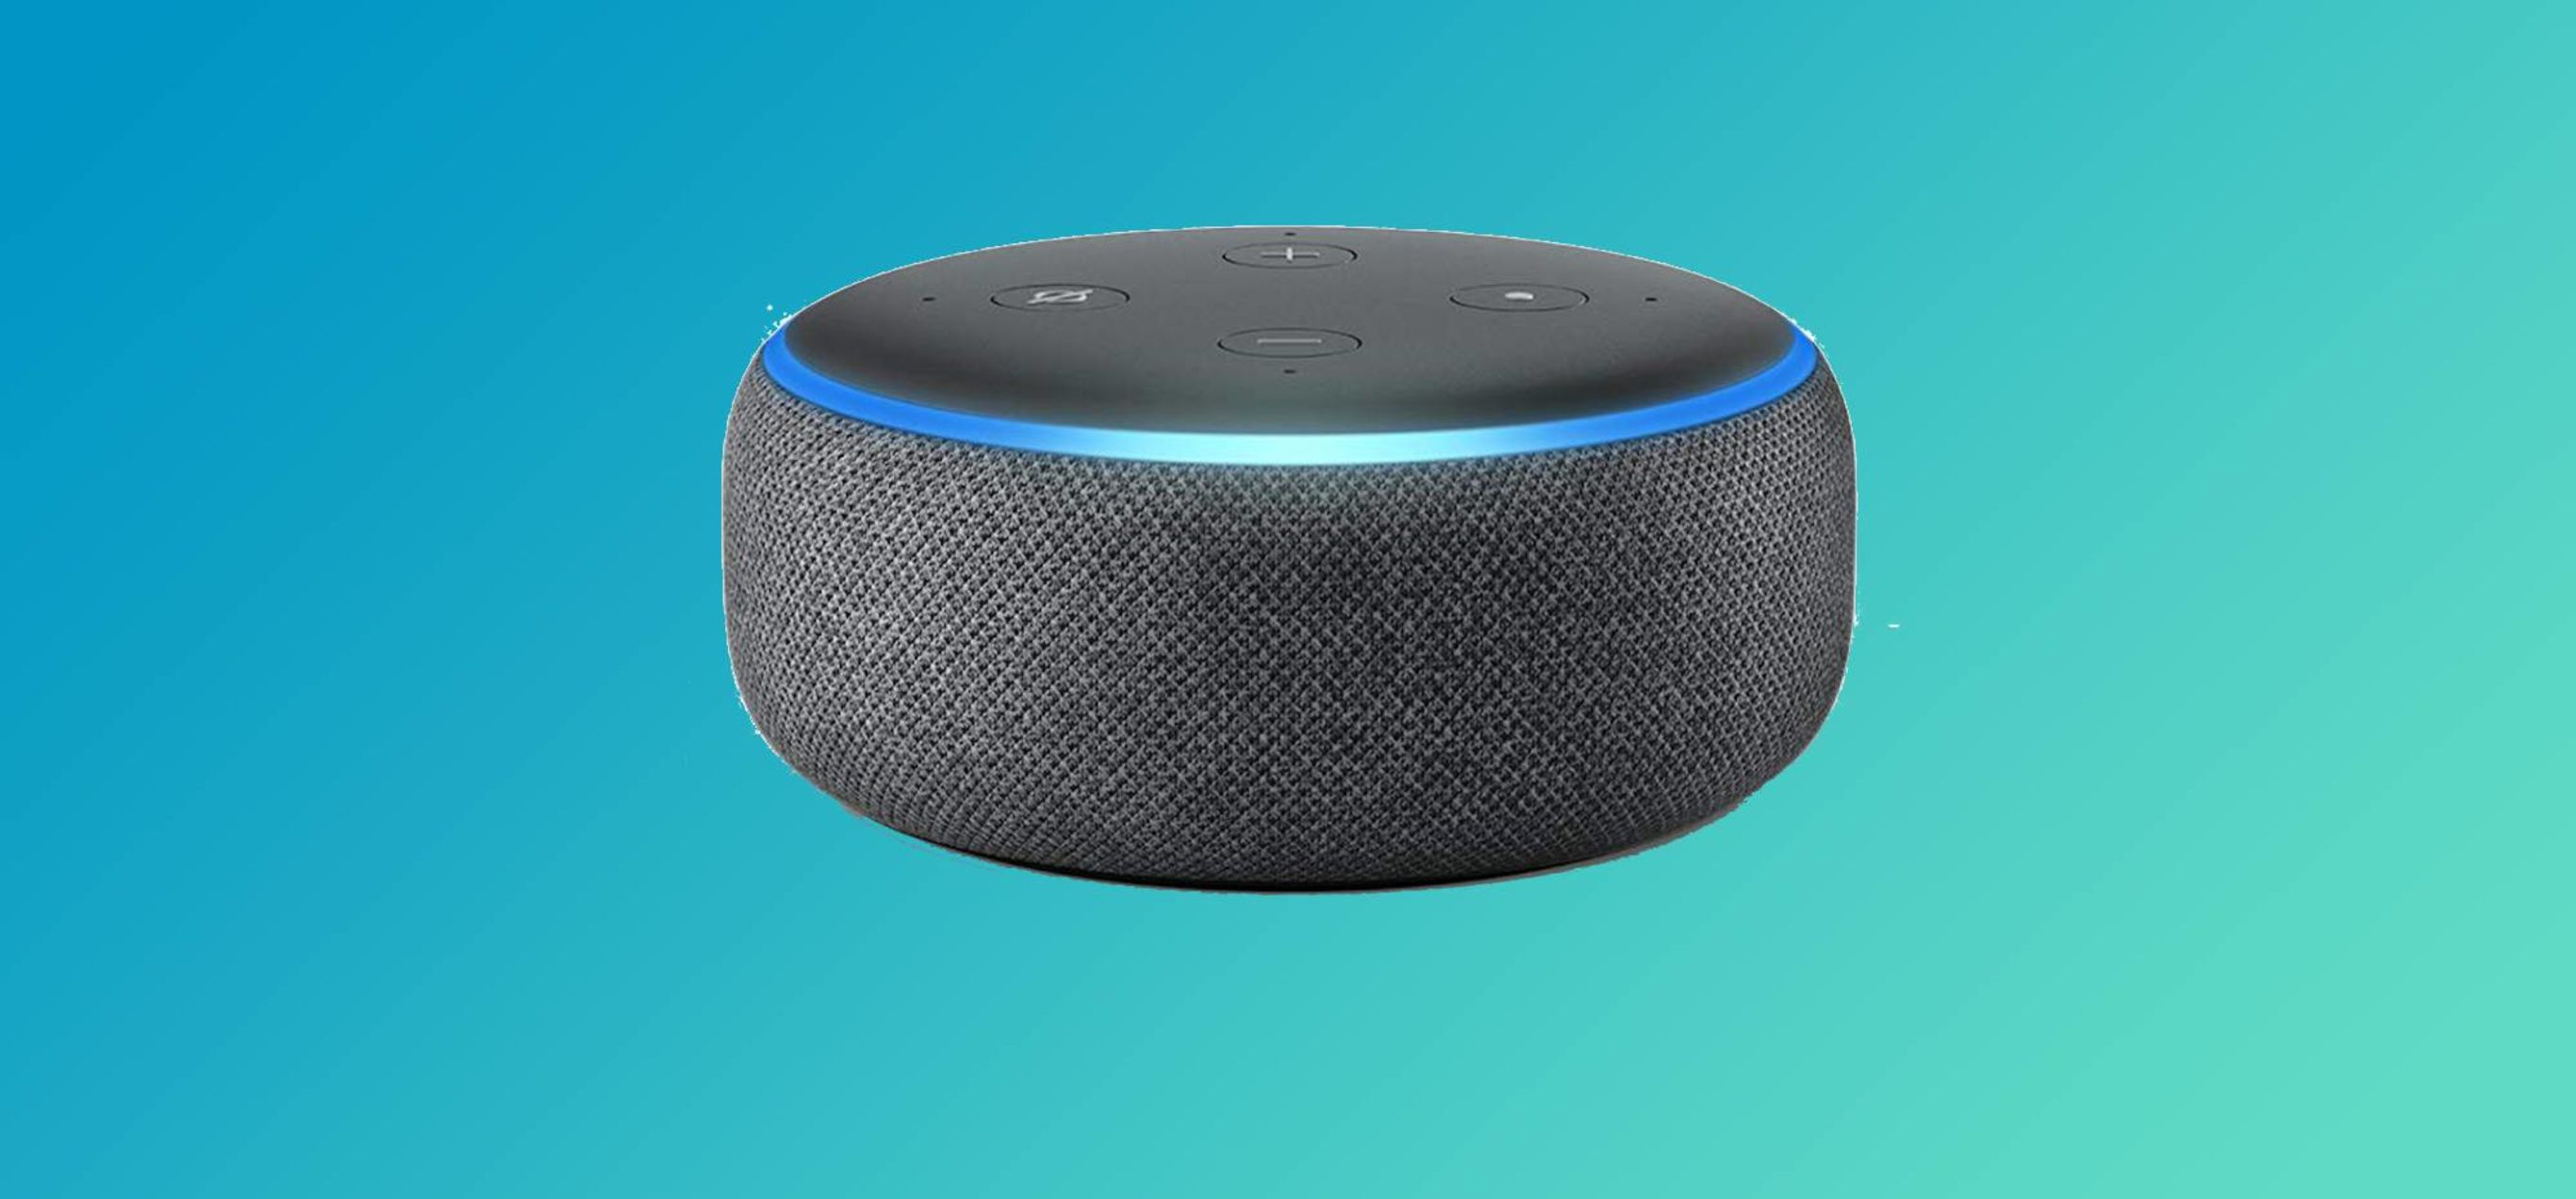 This Weekend's Best Amazon Deals Include Echo Dots, Roku Streaming Devices, and Instant Pots